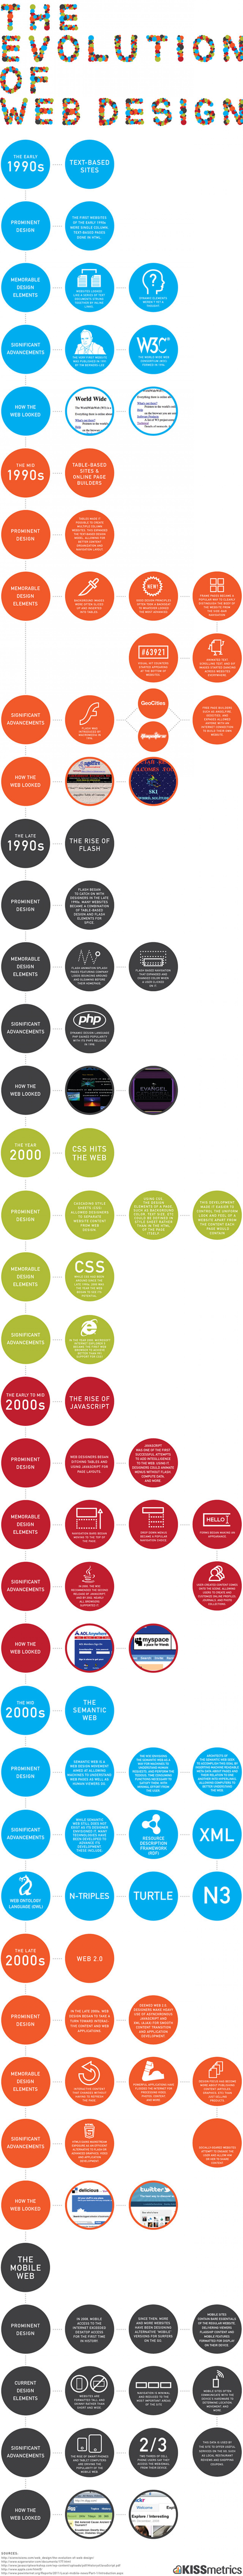 The Evolution of the Web Design  Infographic